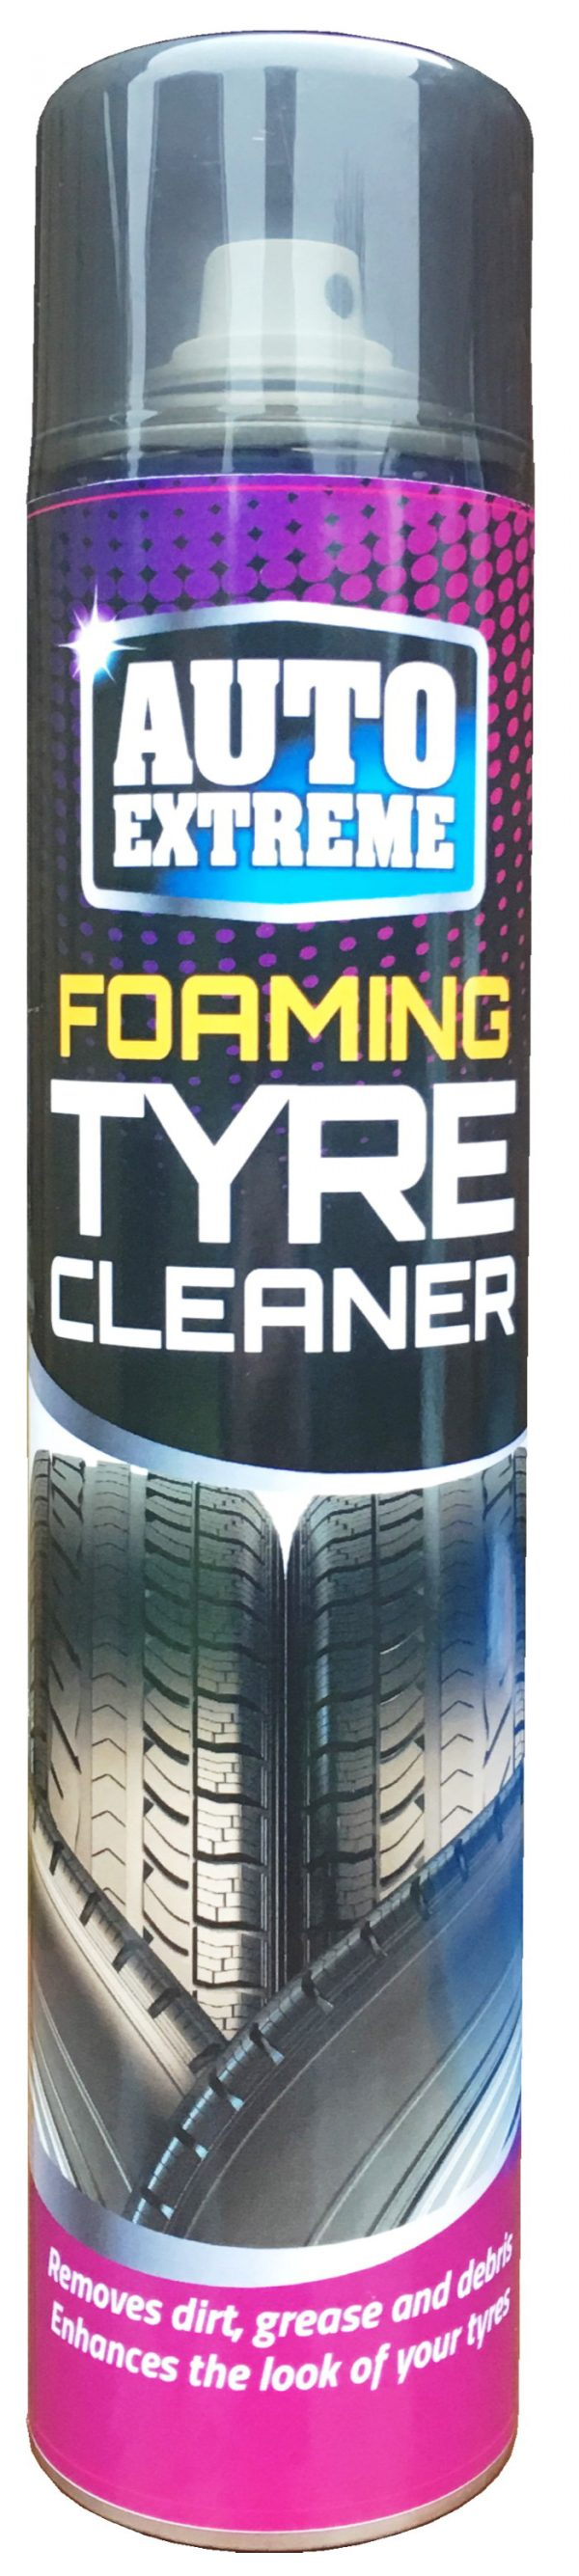 Auto Extreme Foaming Tyre Cleaner 370ml